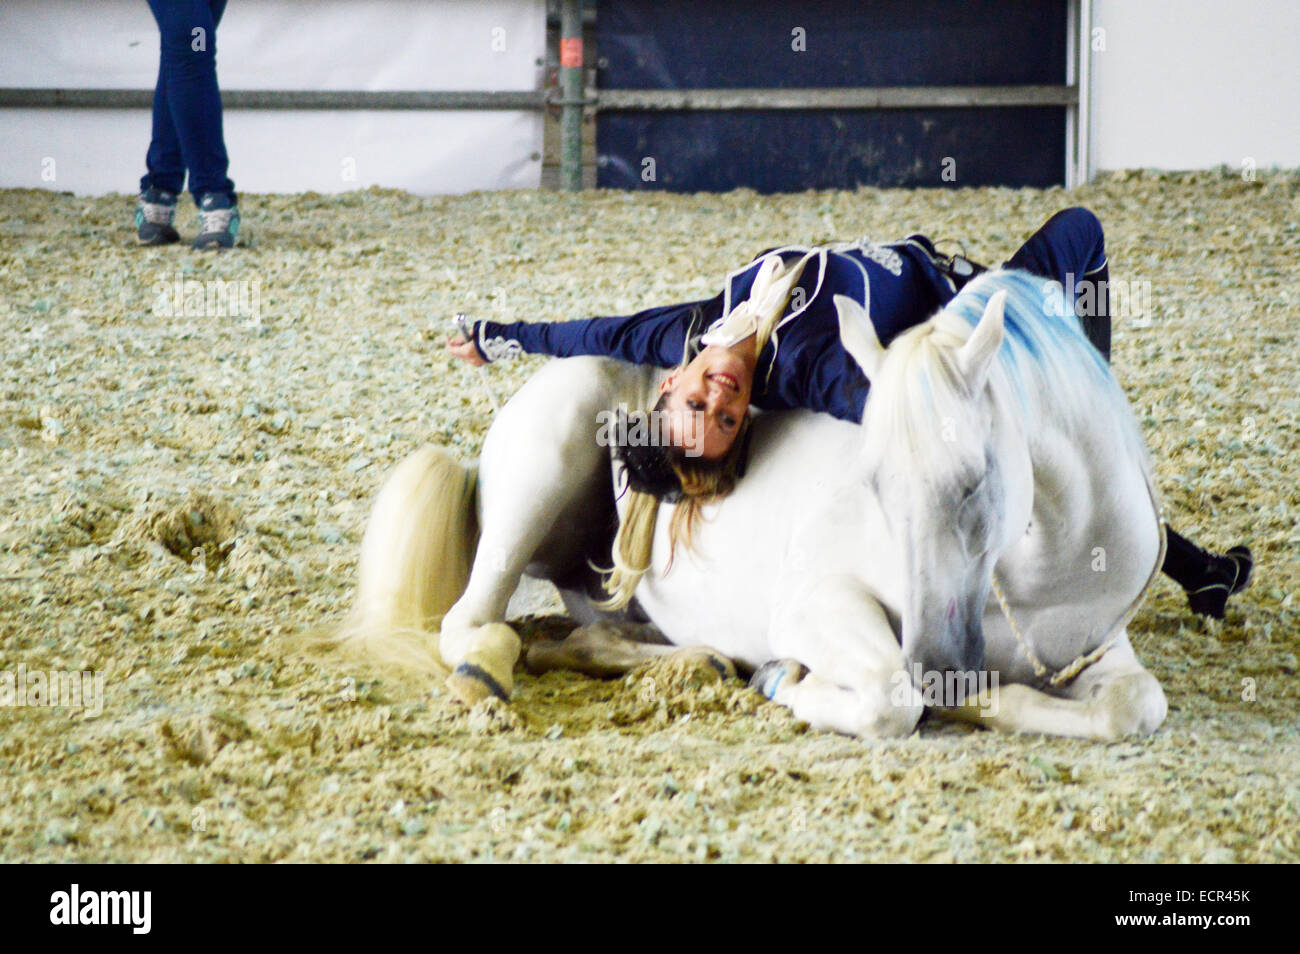 Show The spectacular movement Woman jockey in blue suit rotates on a white horse. International Horse Exhibition - Stock Image